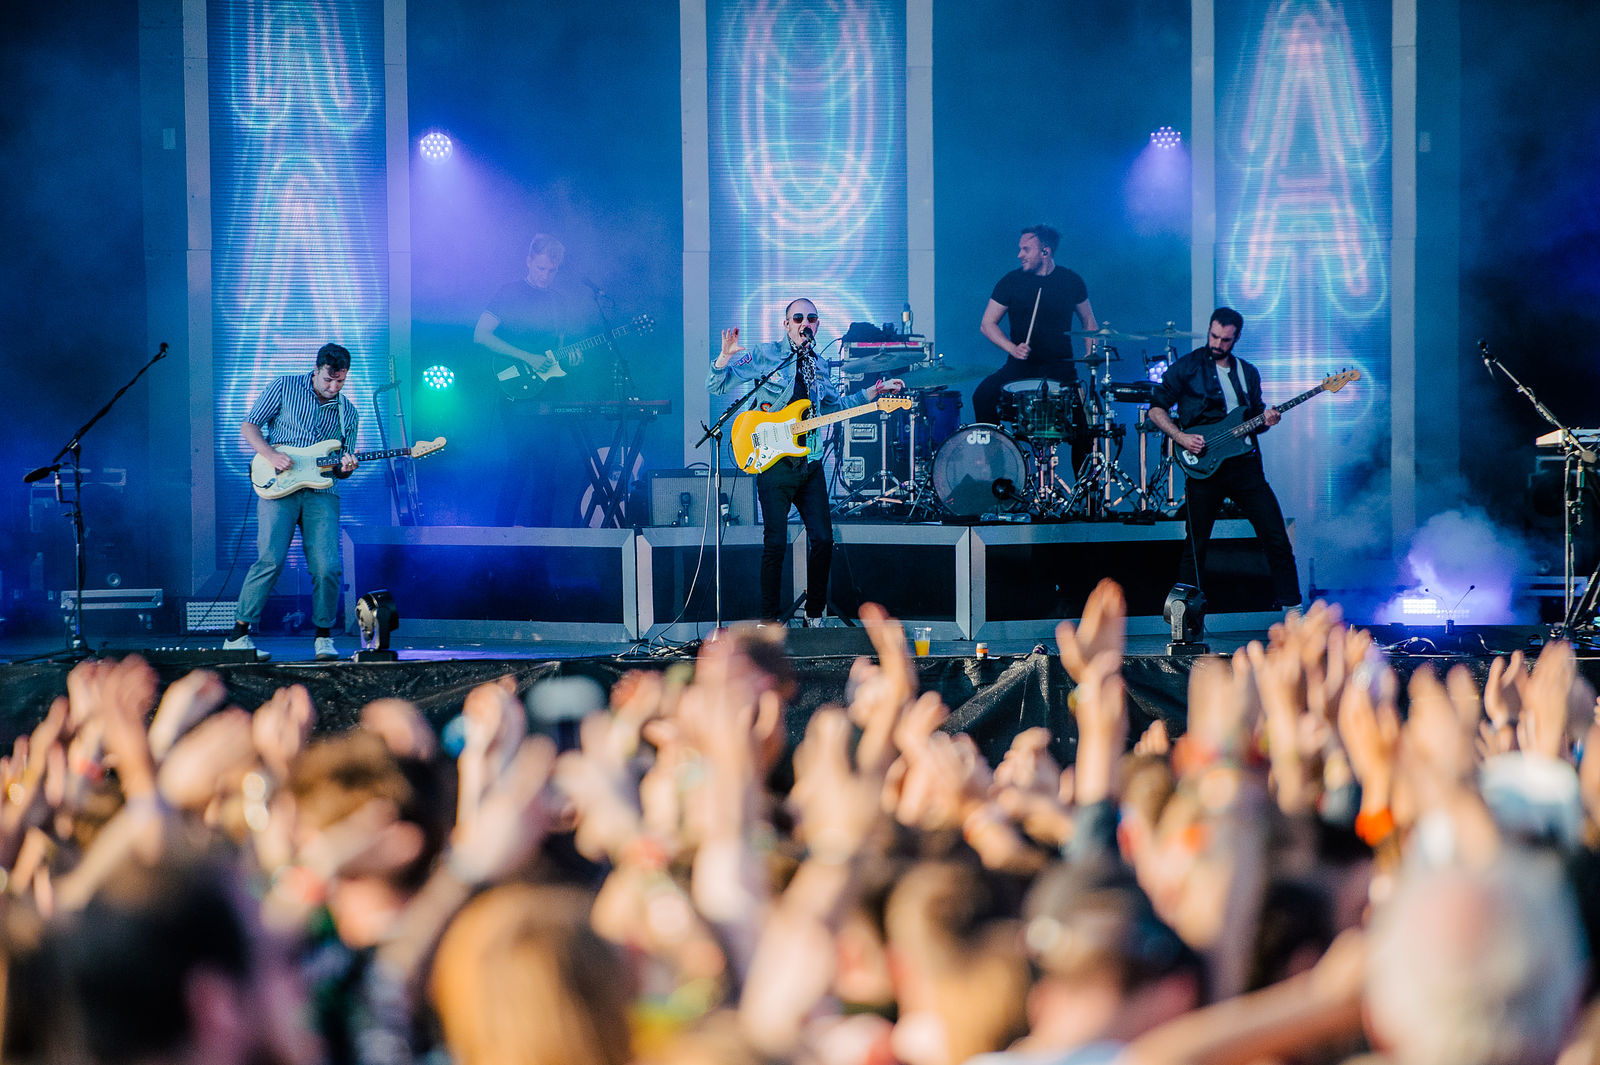 TWO DOOR CINEMA CLUB PERFORMING AT LEEDS FESTIVAL 2017 - 26/08/2017  PICTURE BY: MATT EACHUS PHOTOGRAPHY